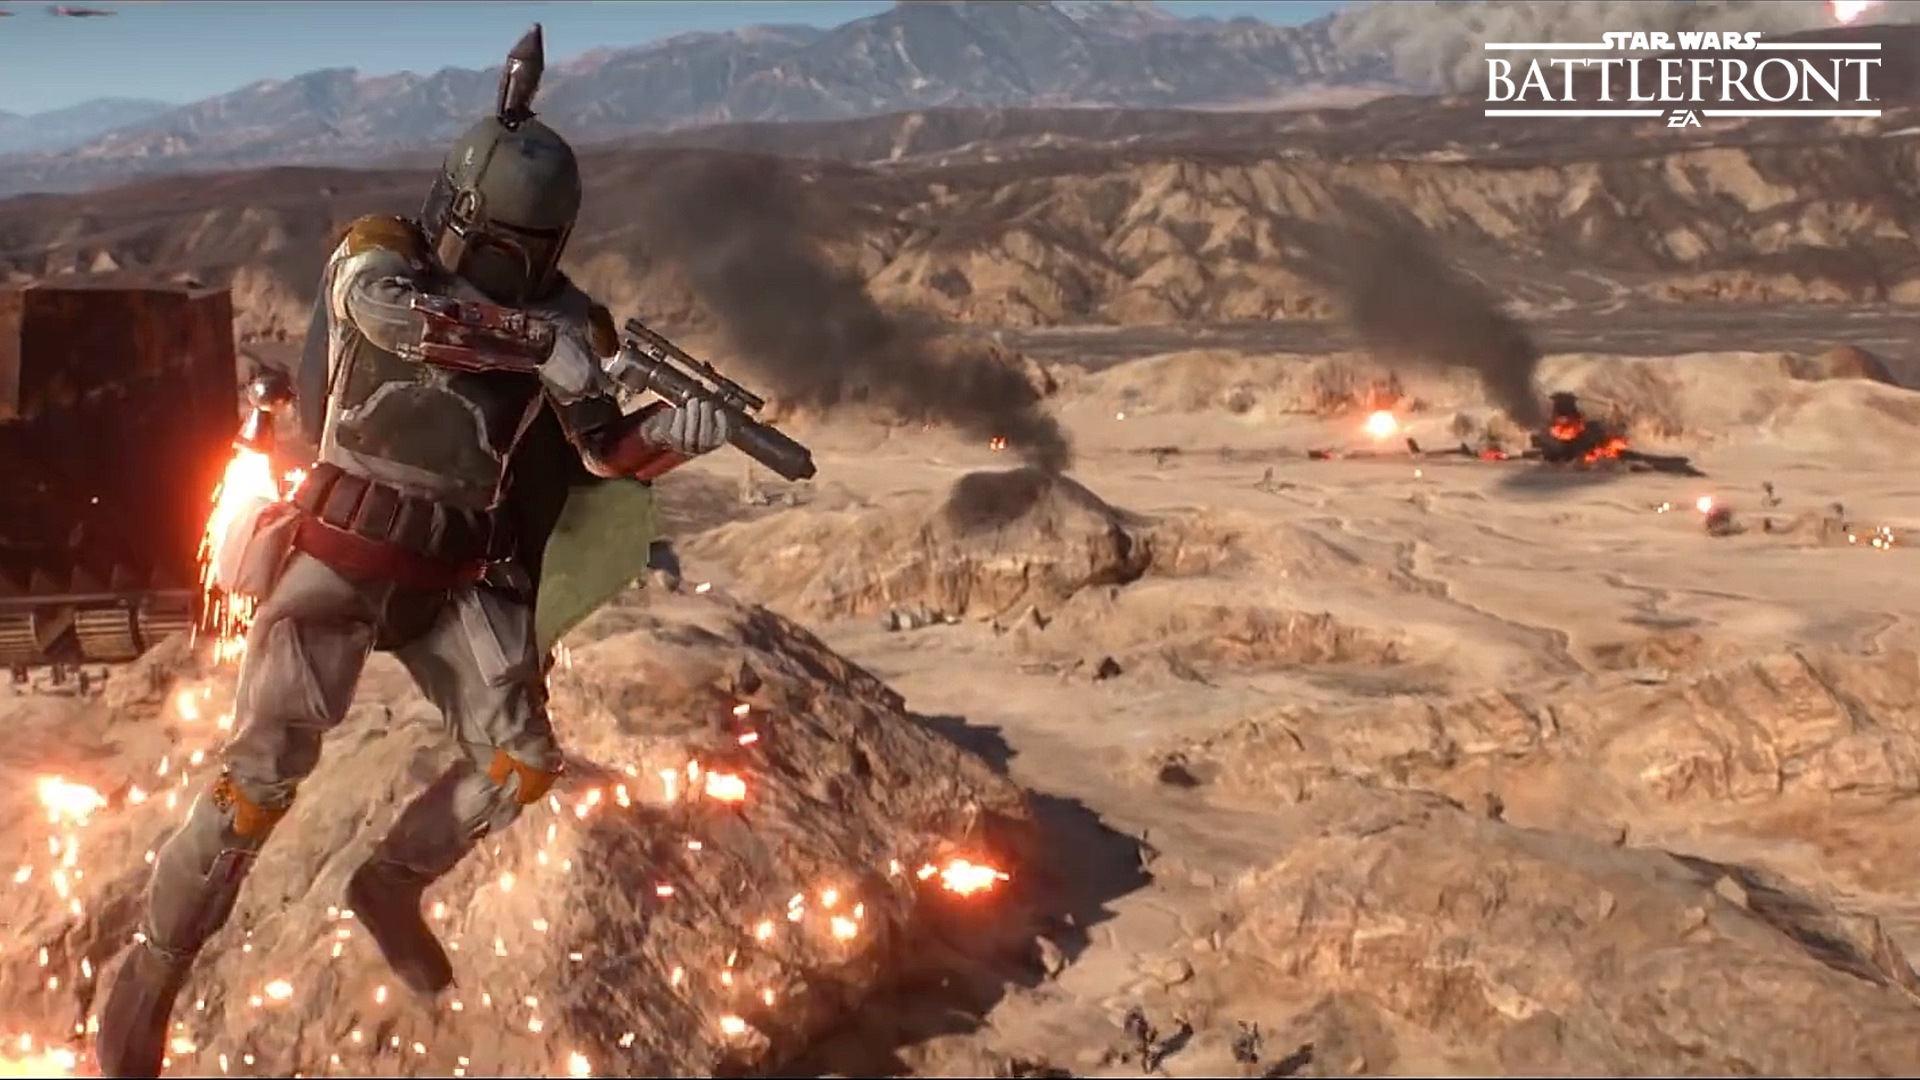 The Villains of Star Wars Battlefront Boba Fett